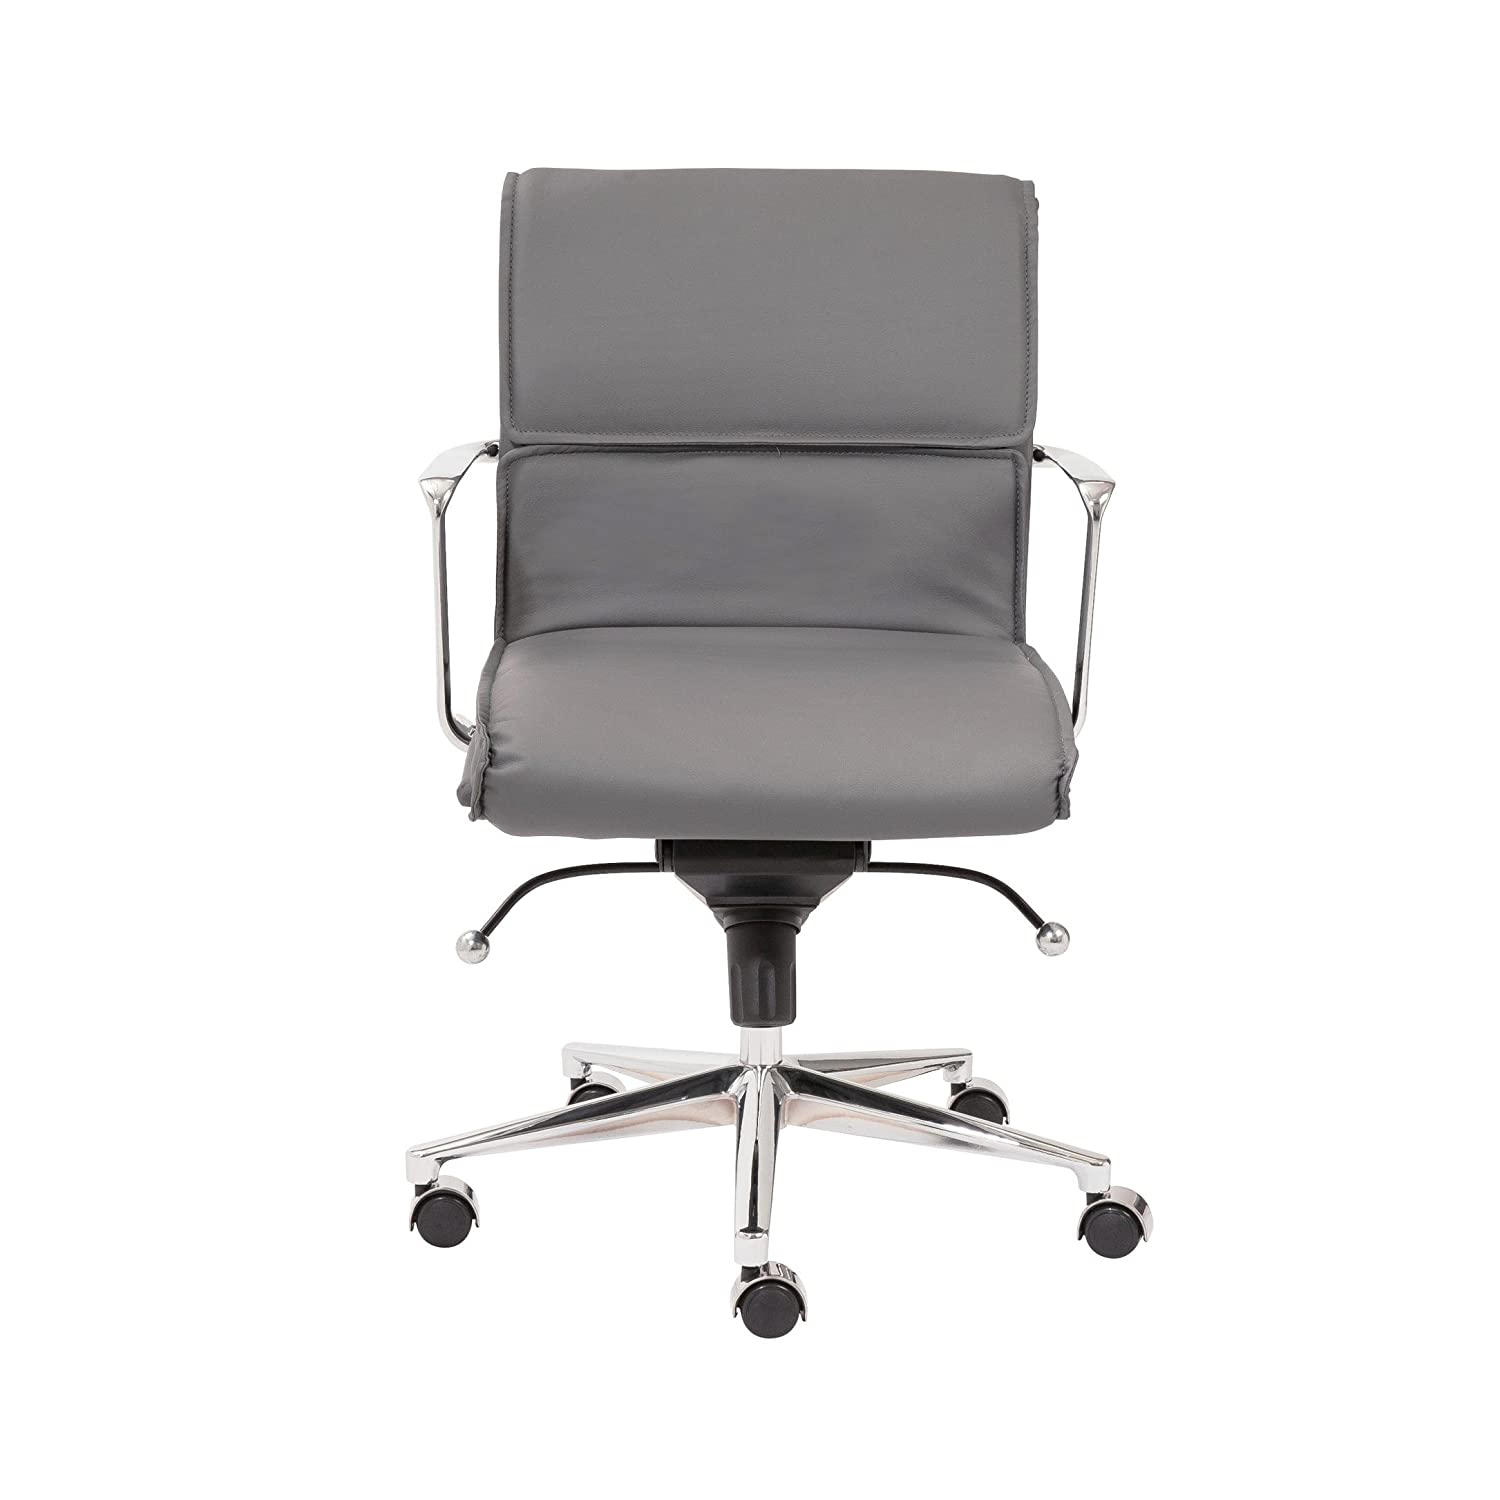 Prime Amazon Com Euro Style Leif Low Back Office Chair Gray Gmtry Best Dining Table And Chair Ideas Images Gmtryco